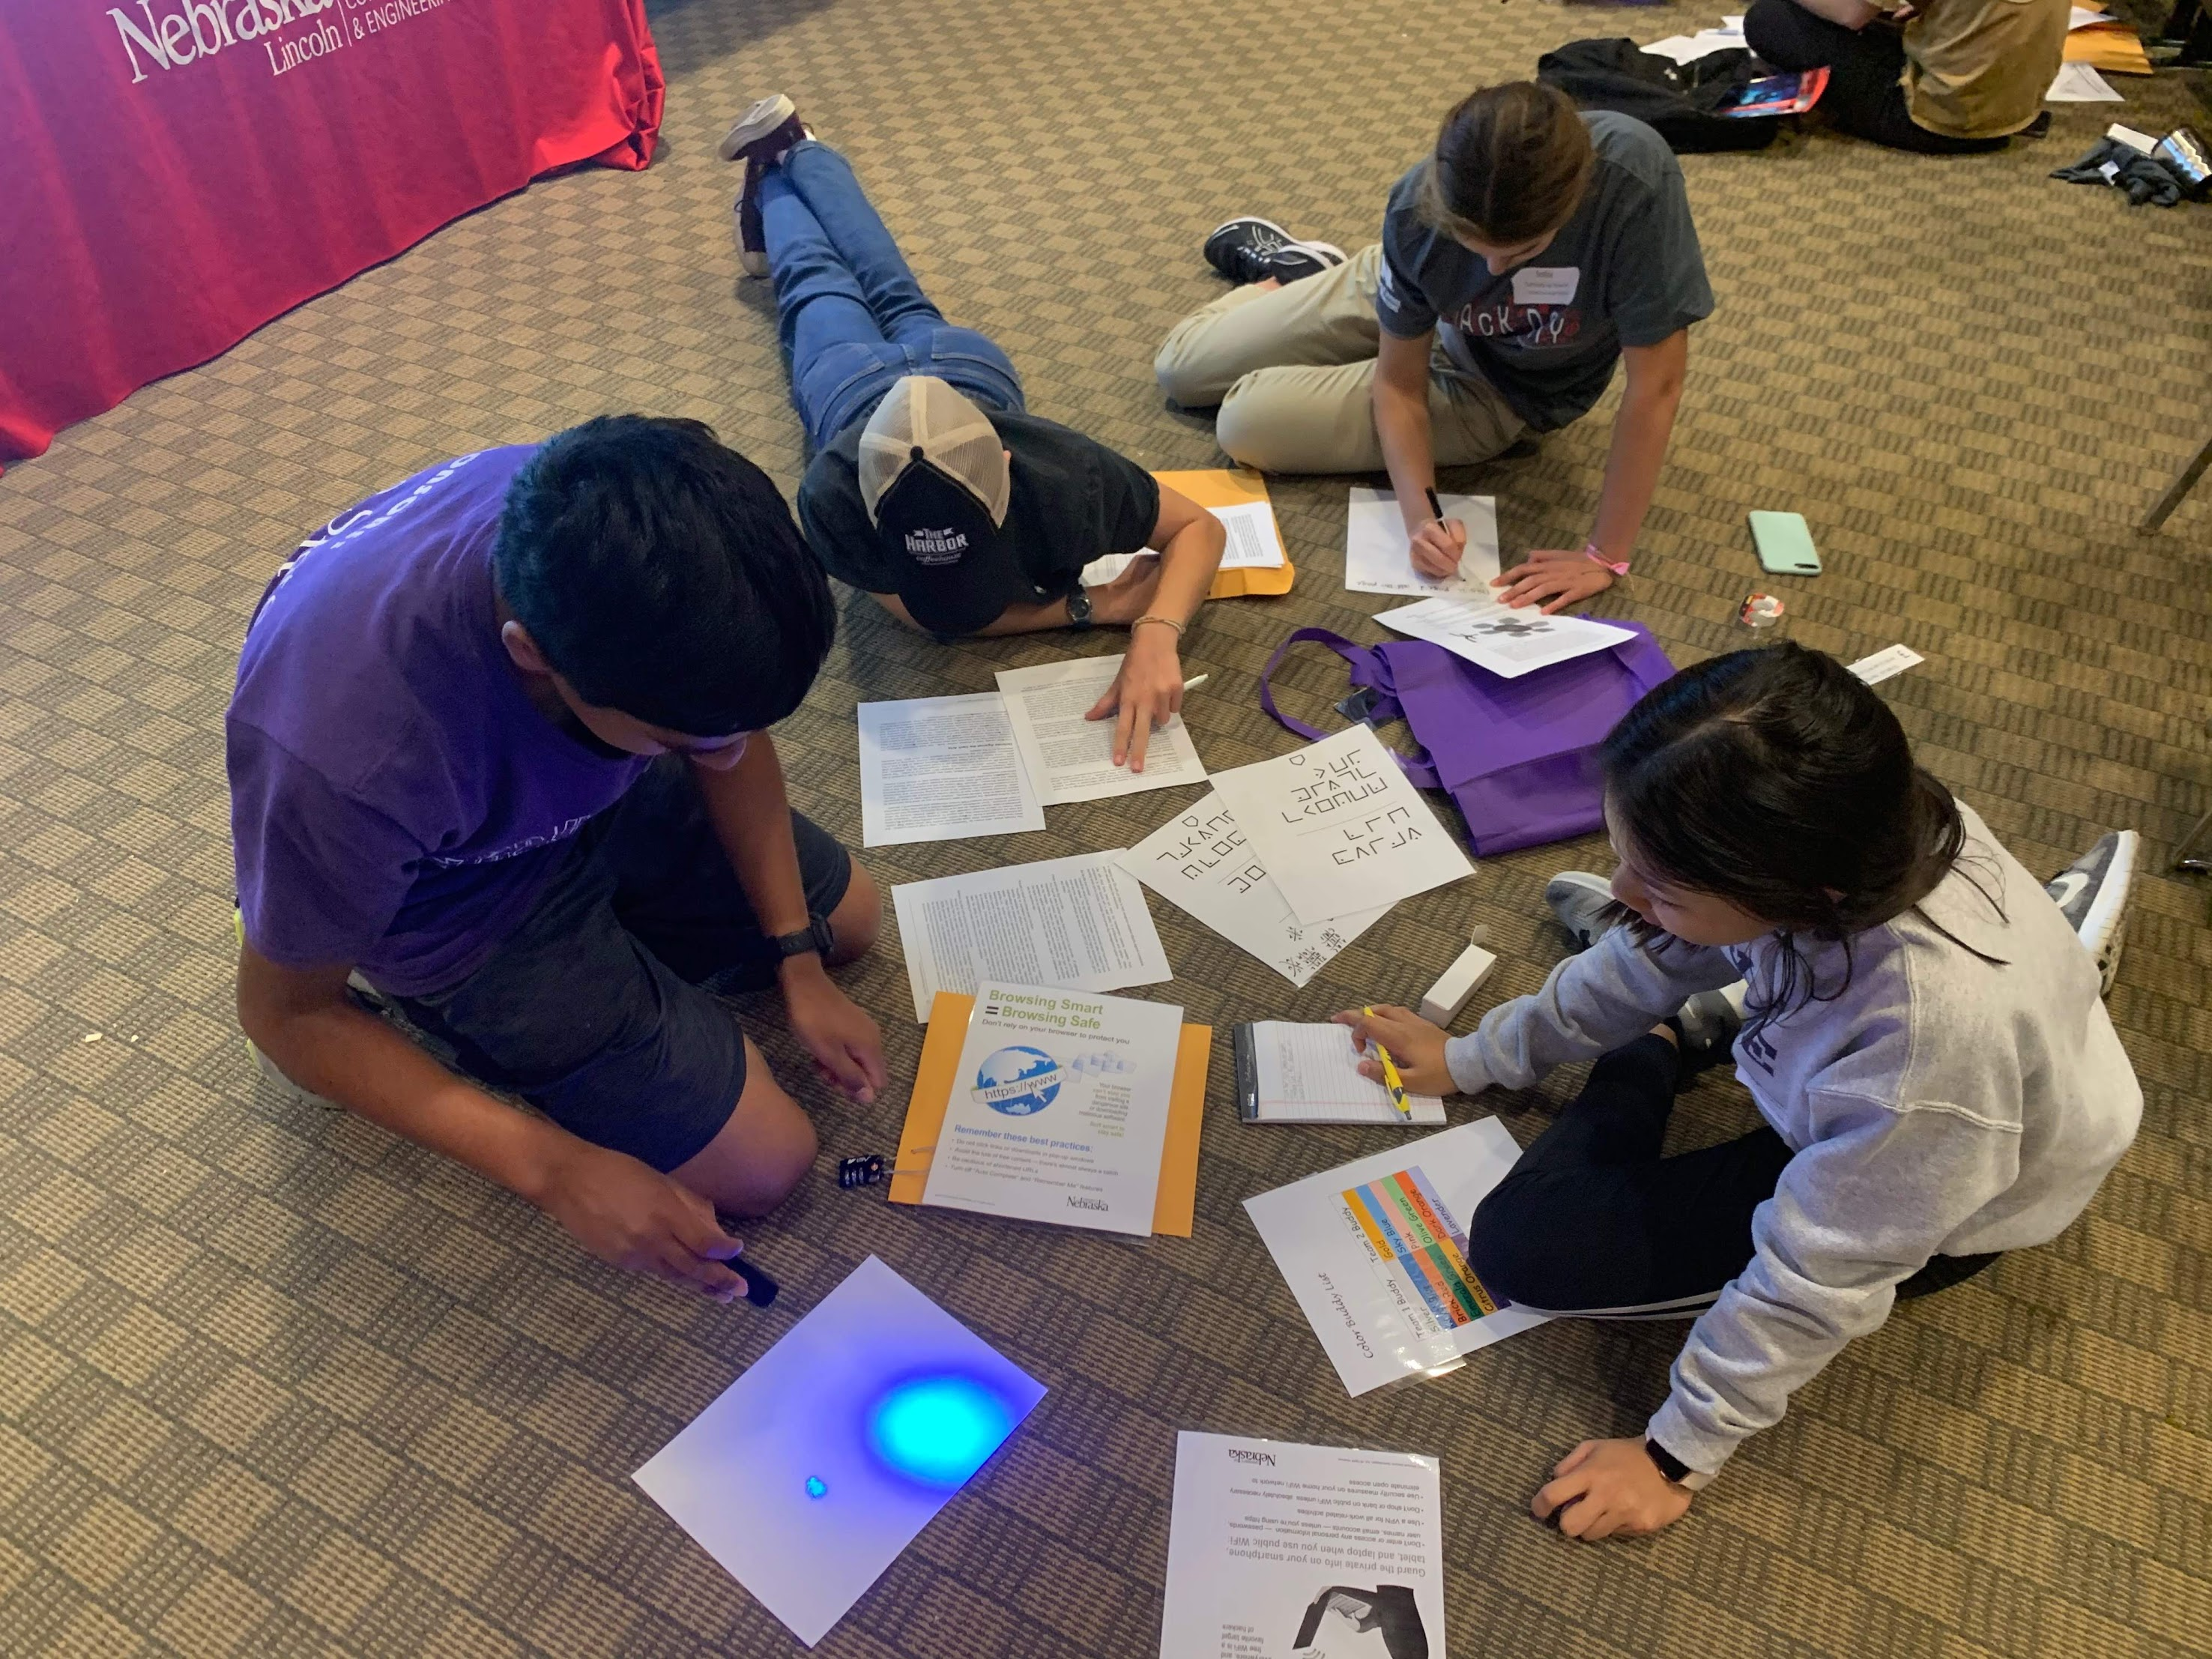 Students at CSE Hack Day participate in an Escape Room Challenge activity.